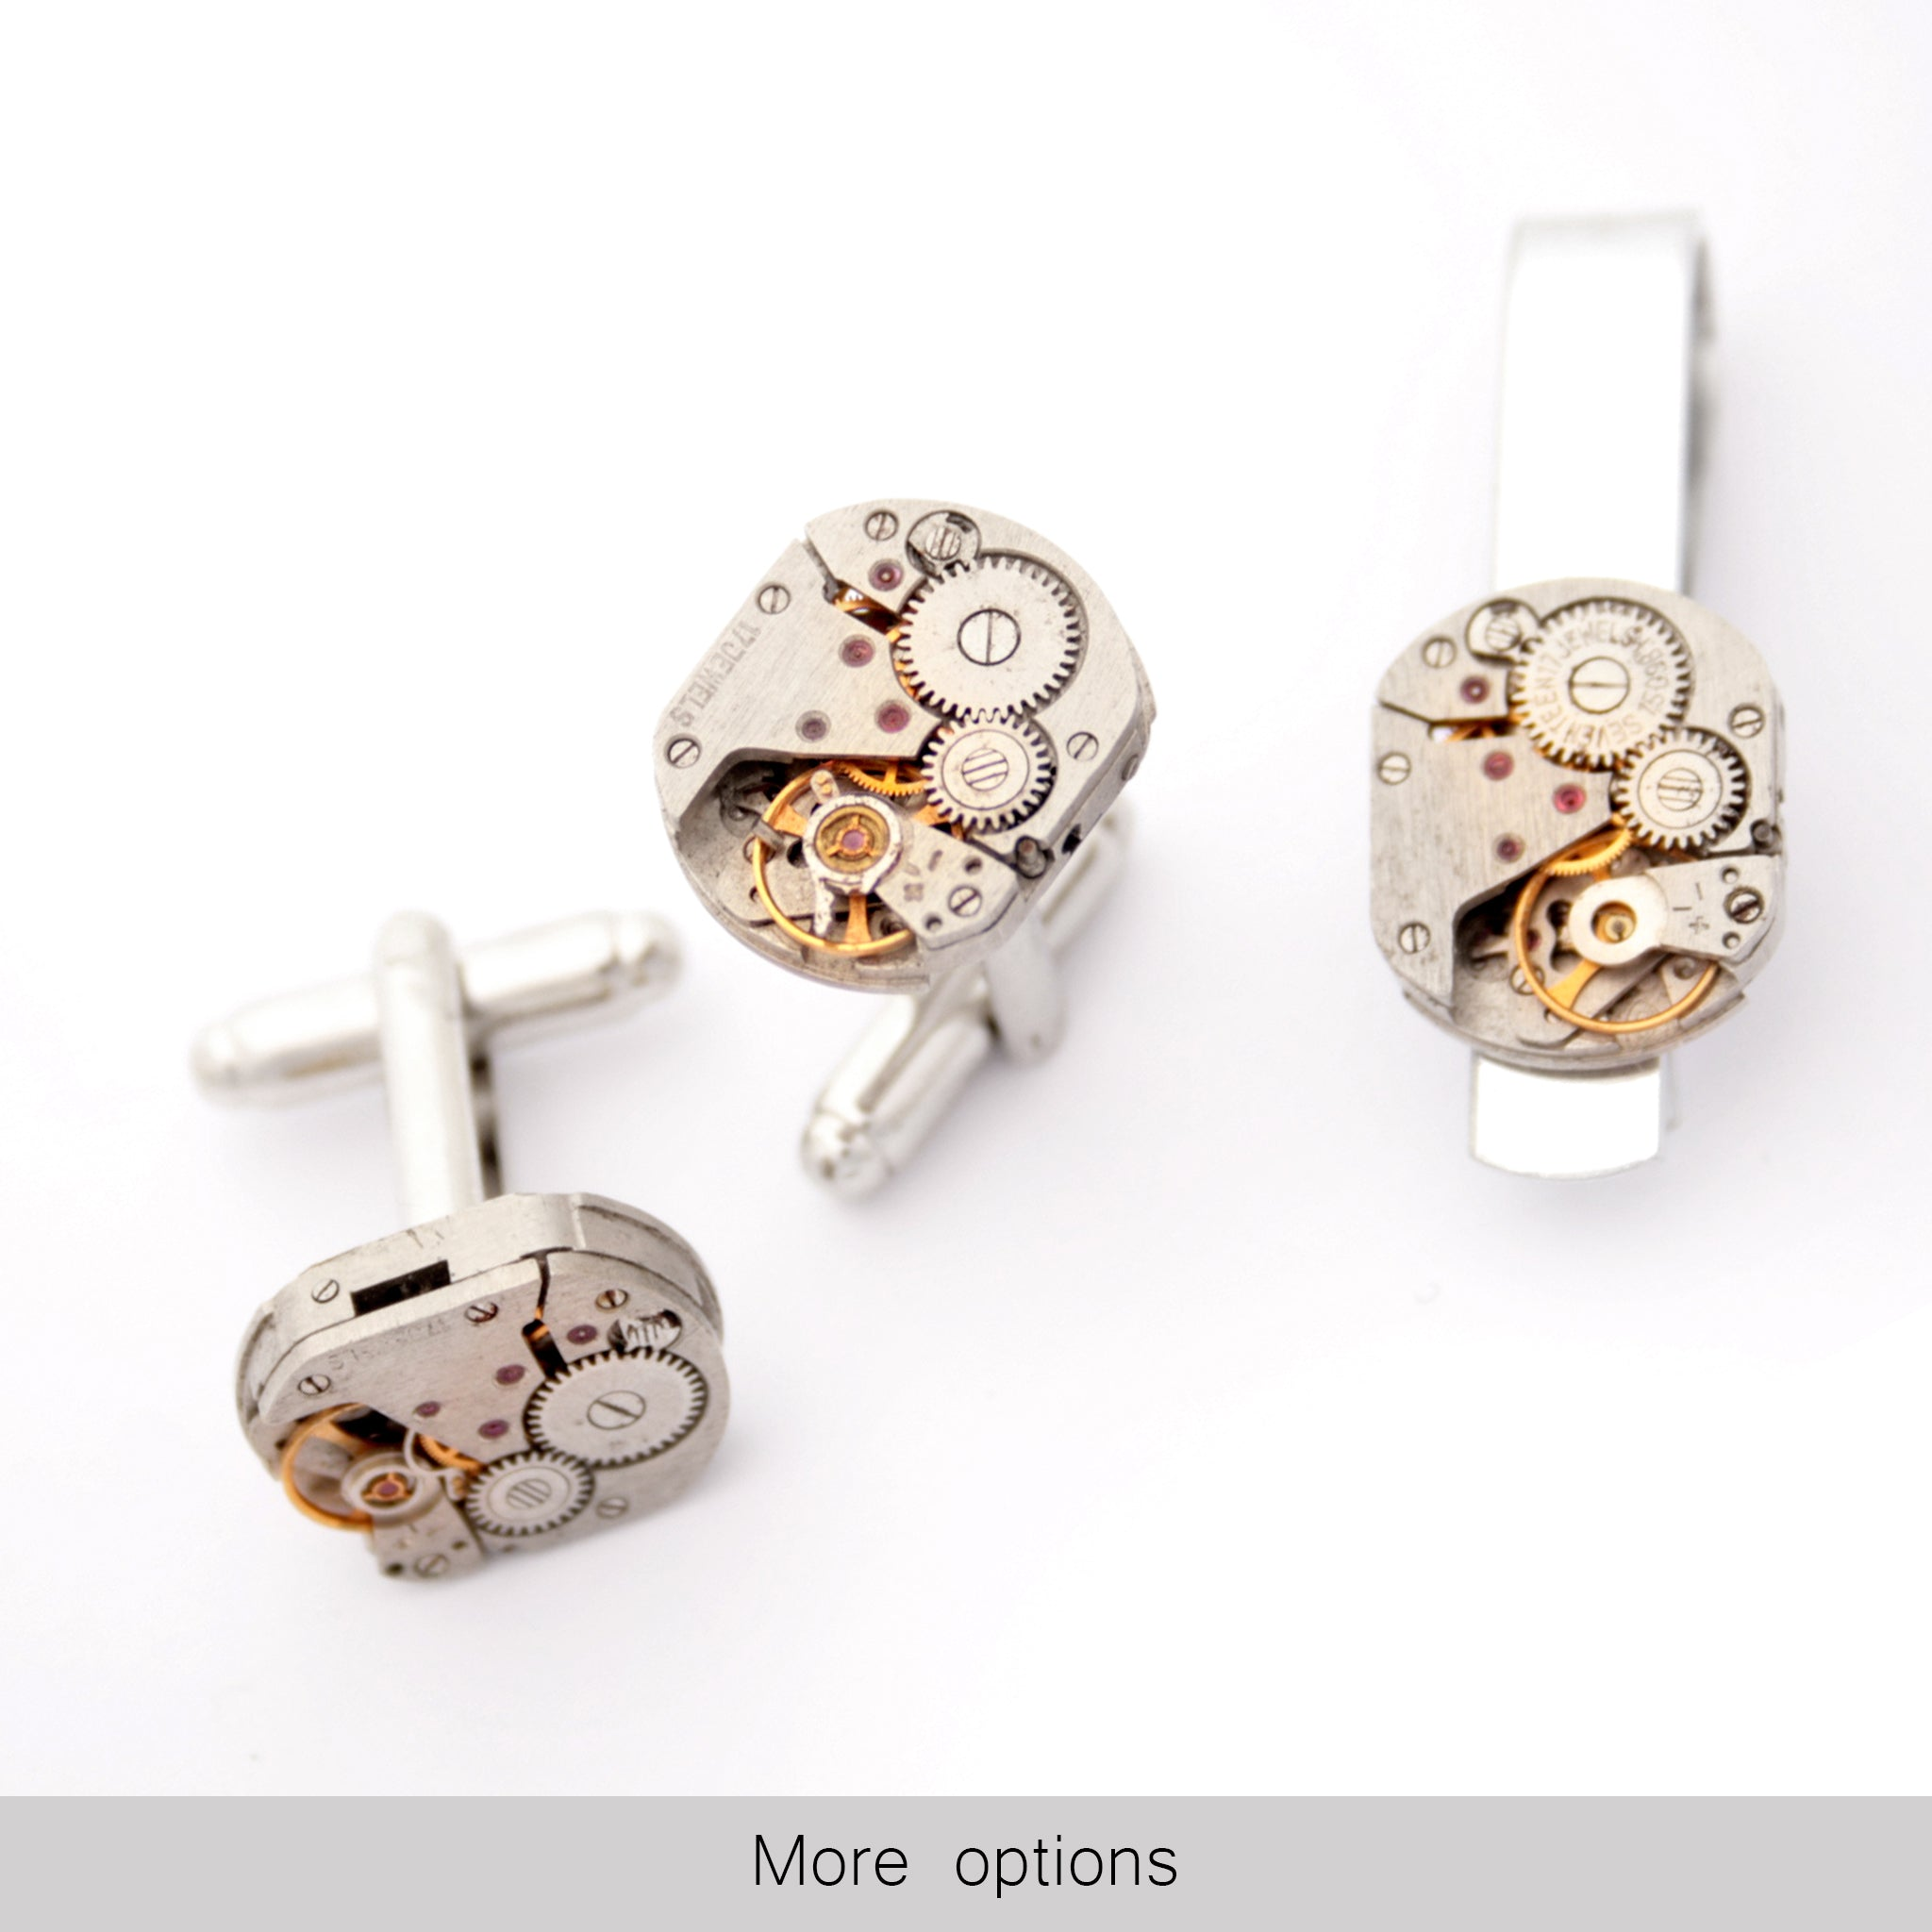 Steampunk Tie Clip and Cufflinks Set